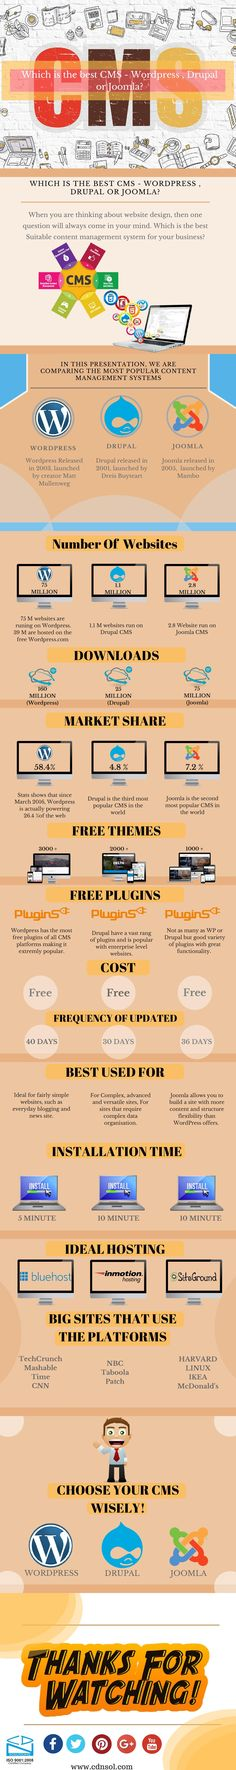 Choose the best content management system according to your need, in these infographic, you can find the major differences between popular and free content management system(CRM). This will make your decision easy to pick one CMS according to your business need. All the Best!!